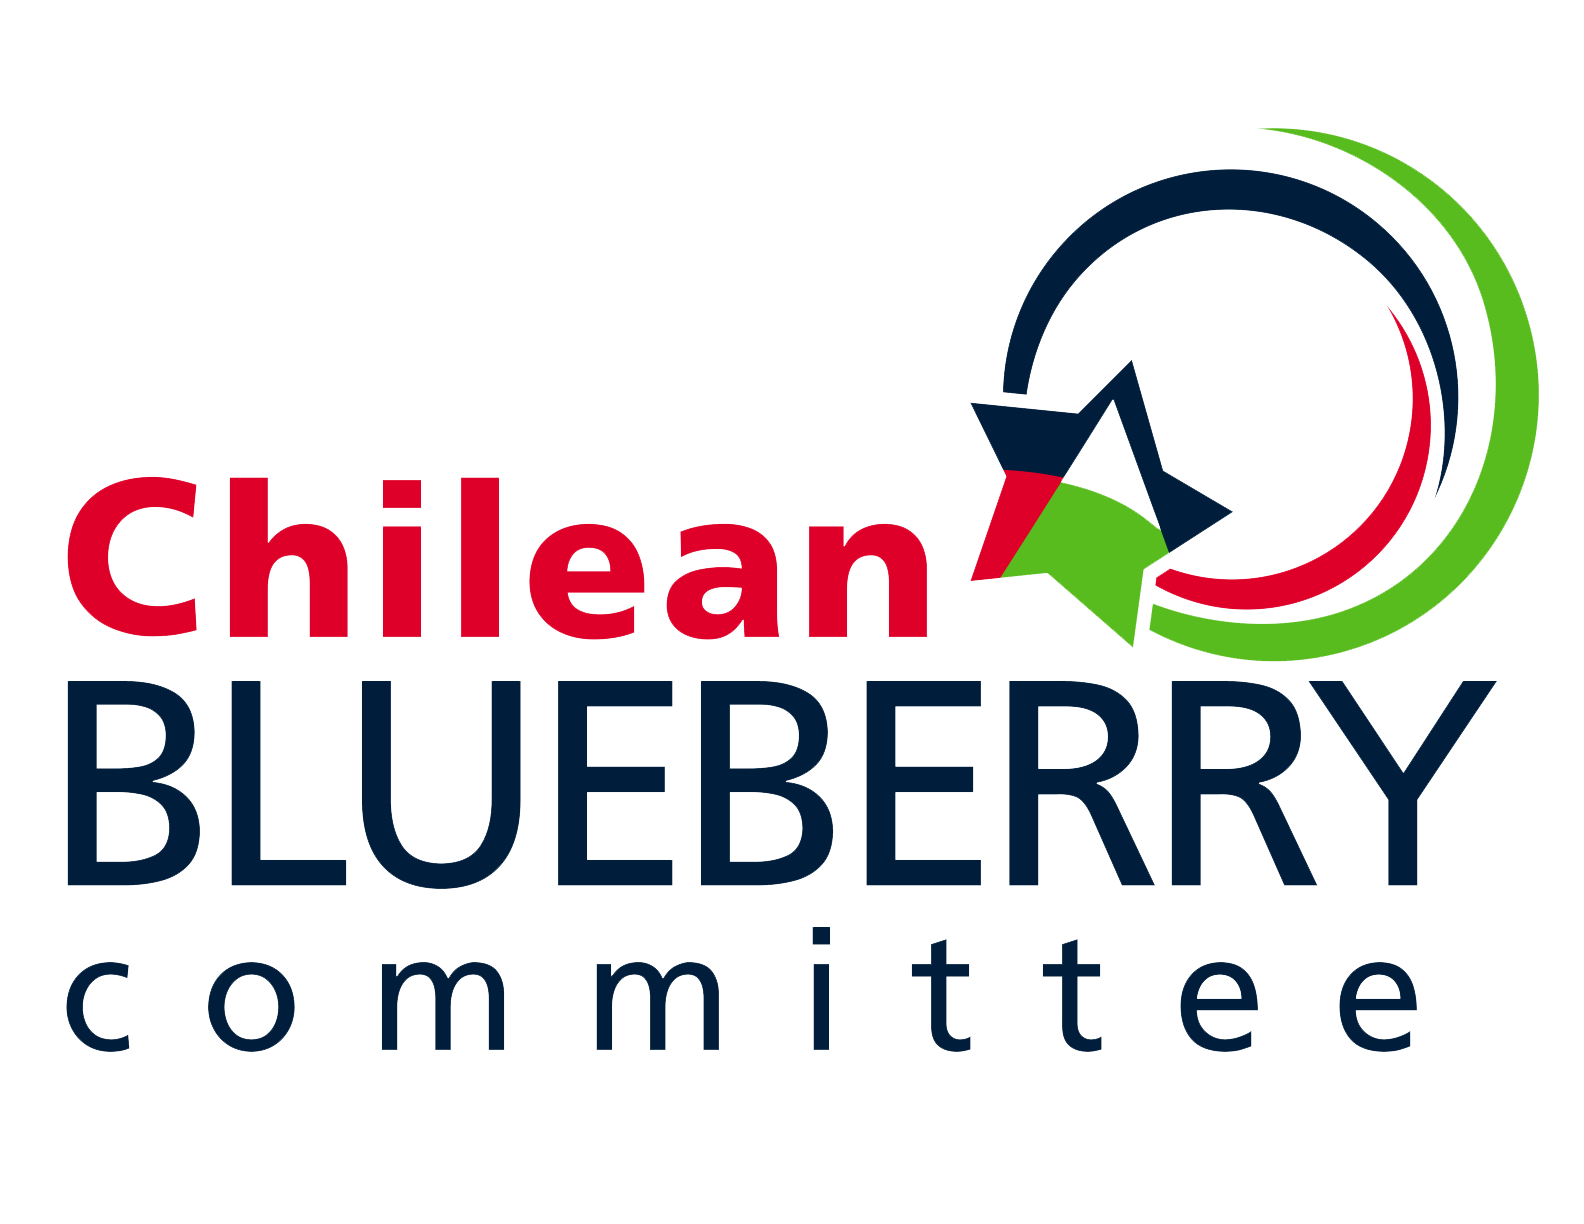 Chilean Blueberry Committee